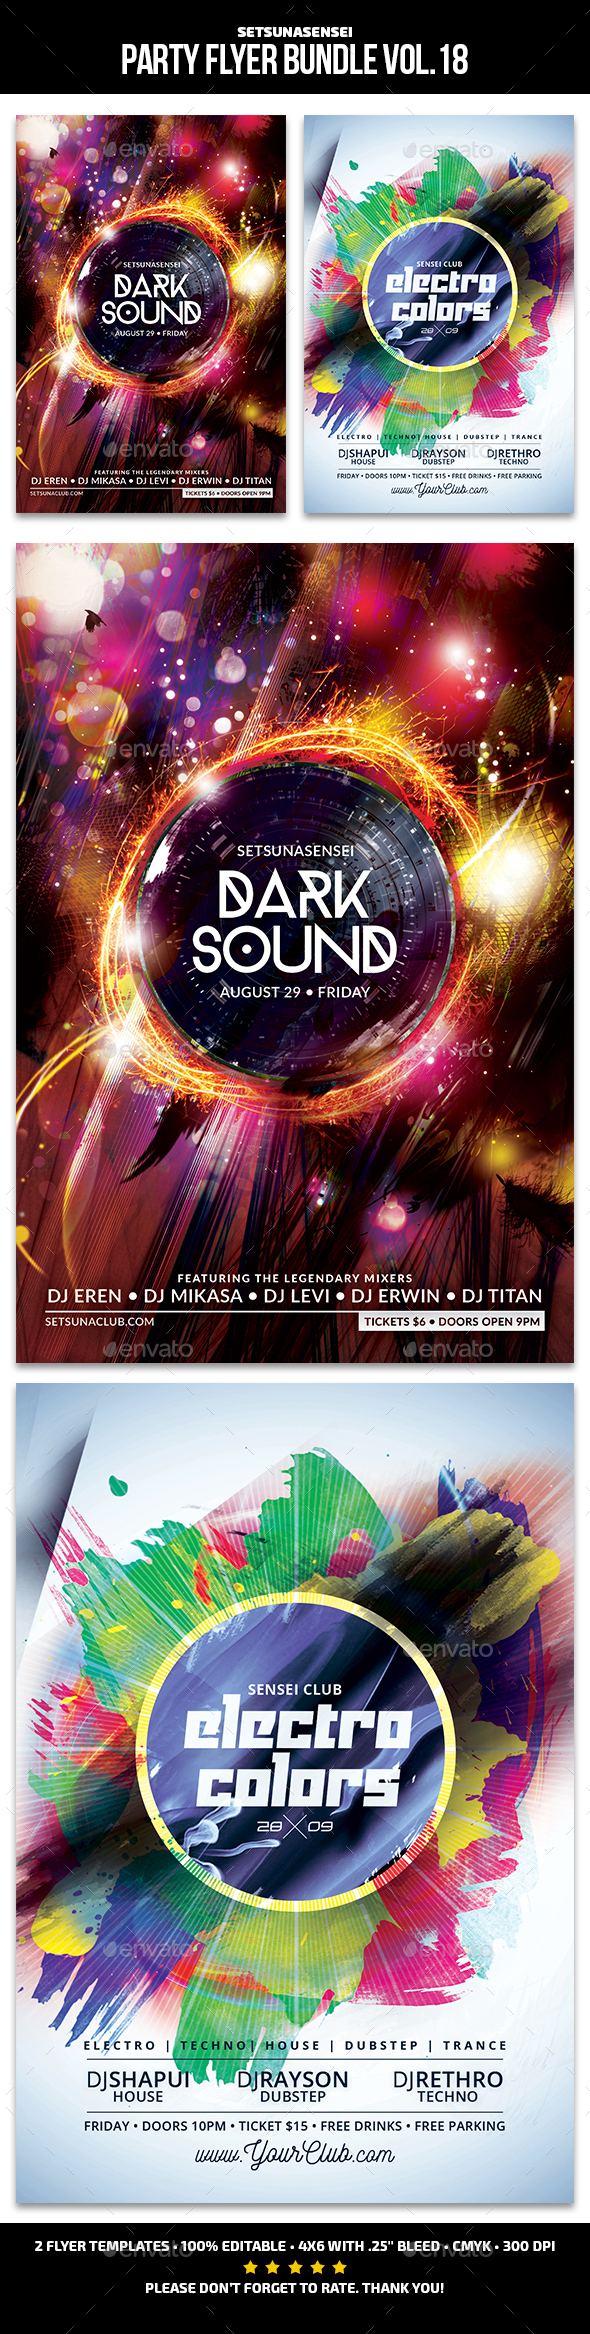 Party Flyer Bundle Vol. 18 - Clubs & Parties Events